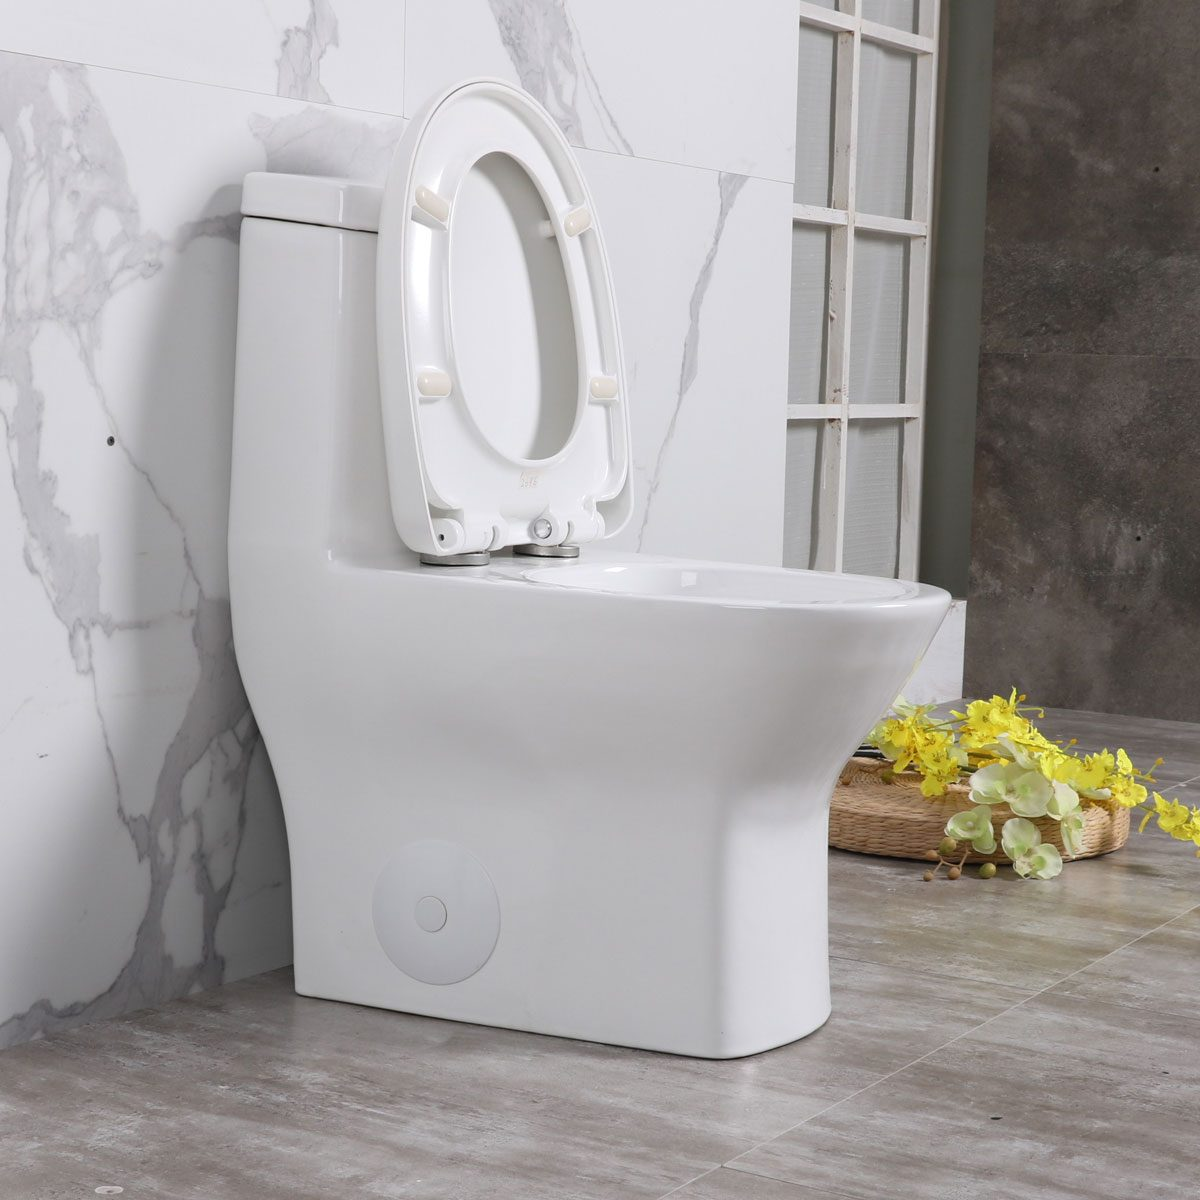 Toilet Yd23 Carus 23 Inch Tiny Small Short Toilet 5